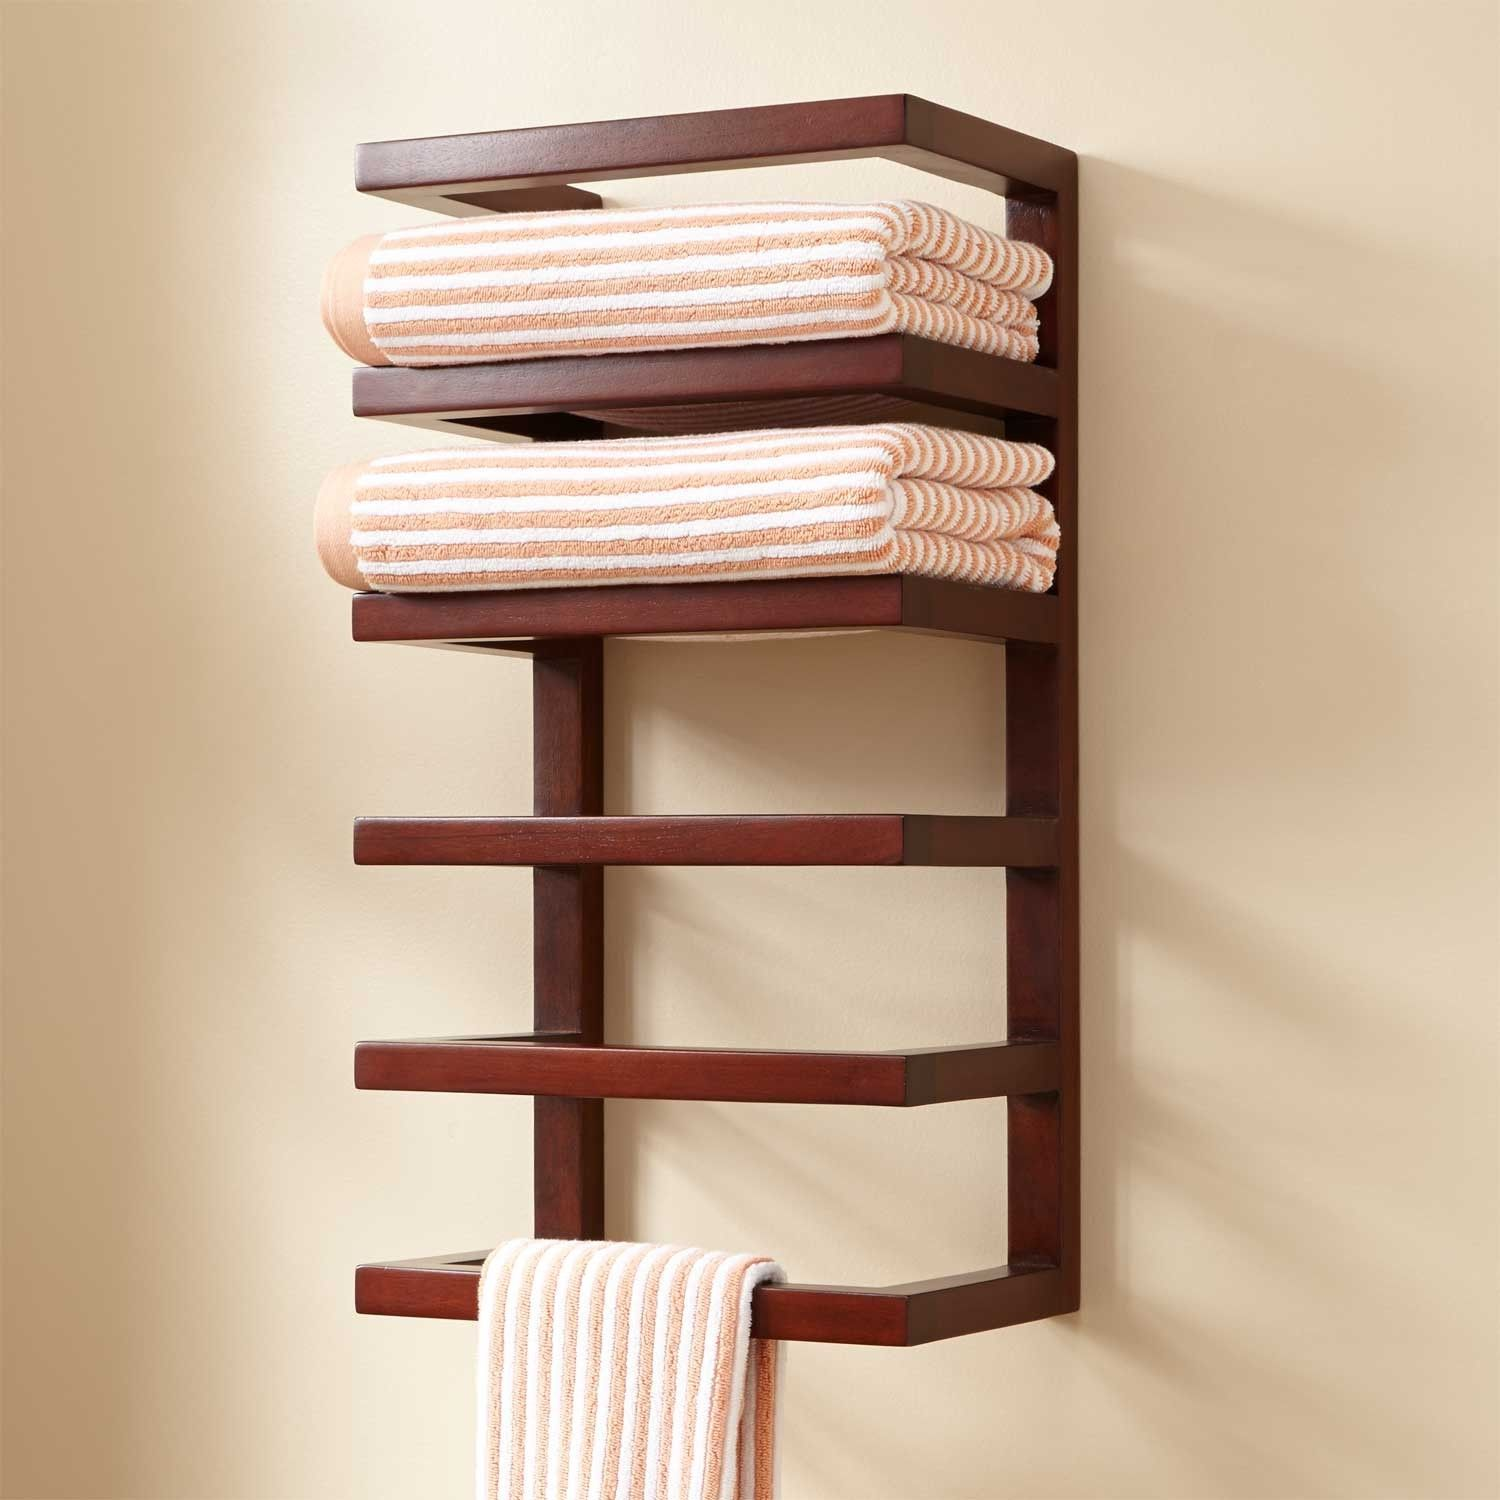 Mahogany Hanging Towel Rack Towel Holders Bathroom Accessories